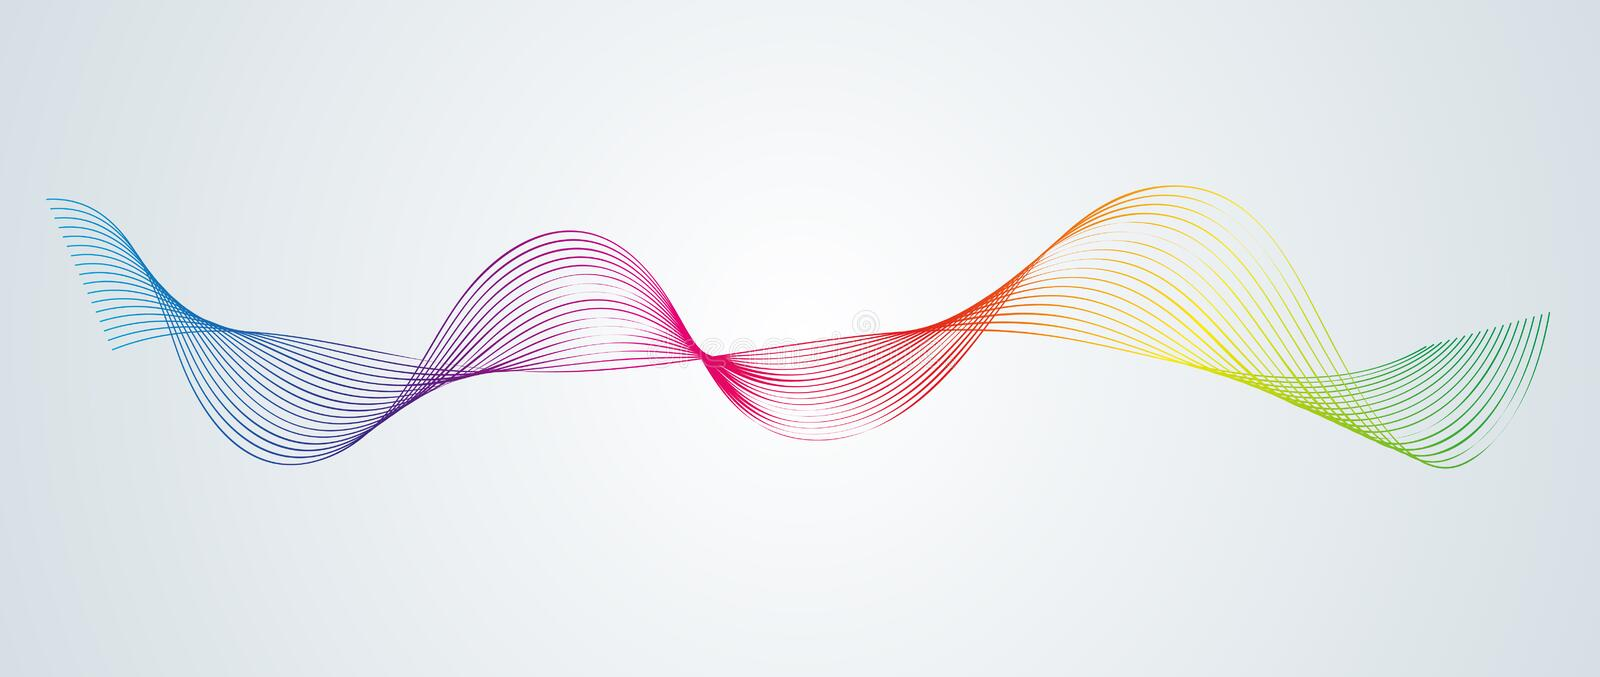 Abstract smooth curved lines Design element Technological background with a line in the form of a wave Stylization of a digital eq. Abstract smooth curved lines stock illustration